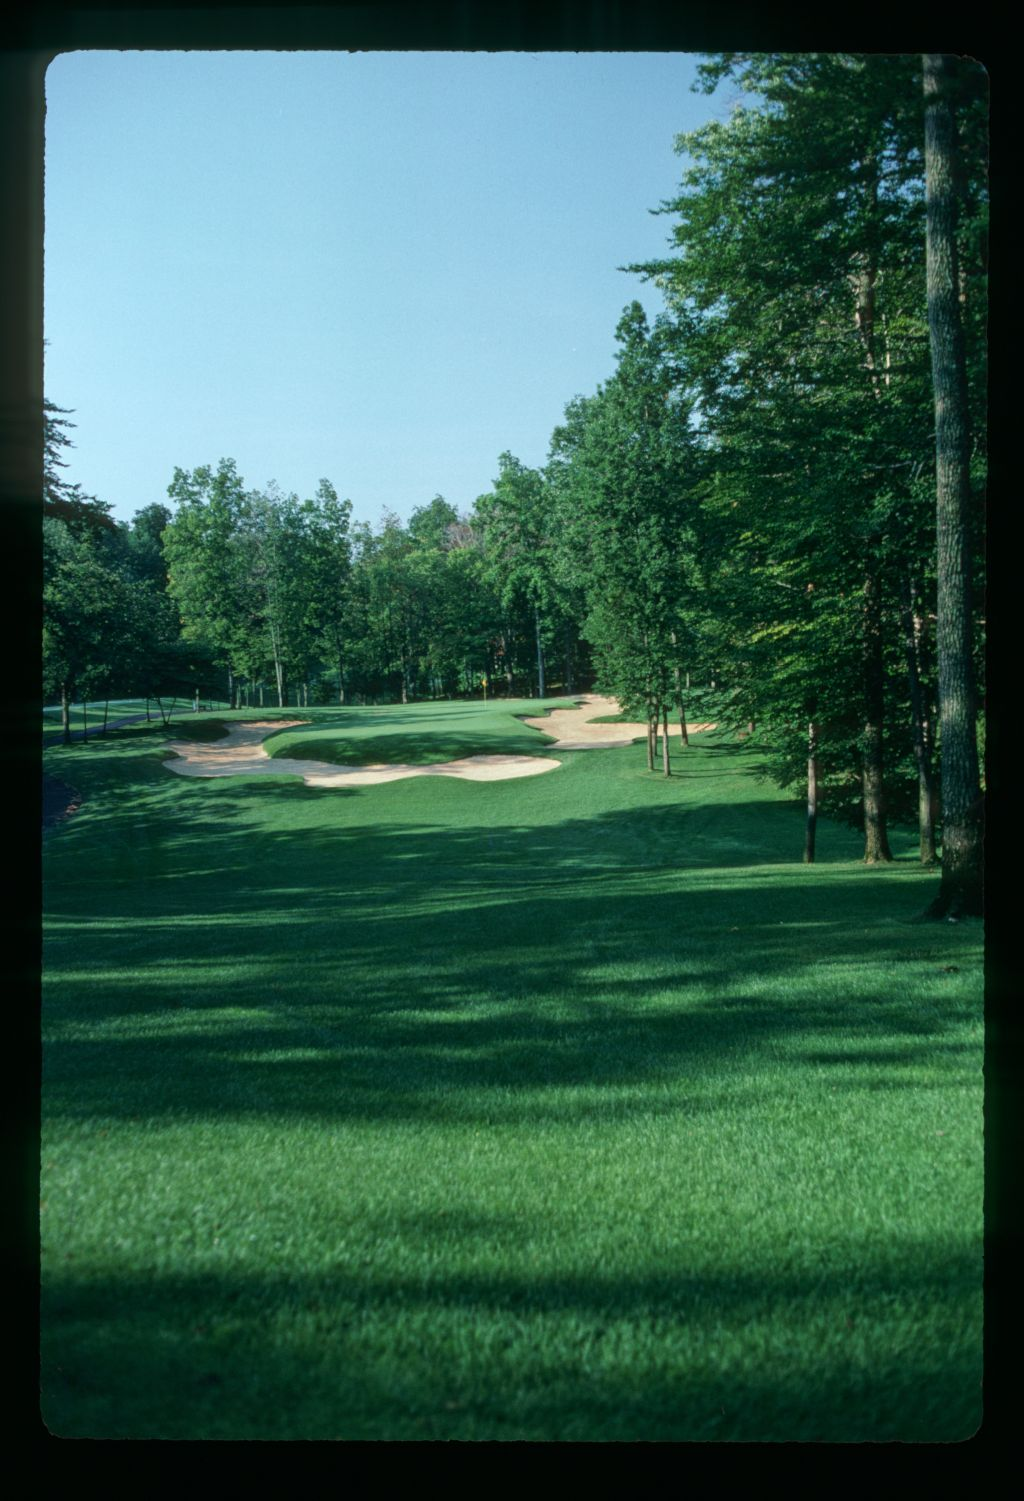 The 8th Hole at Muirfield Village Golf Course